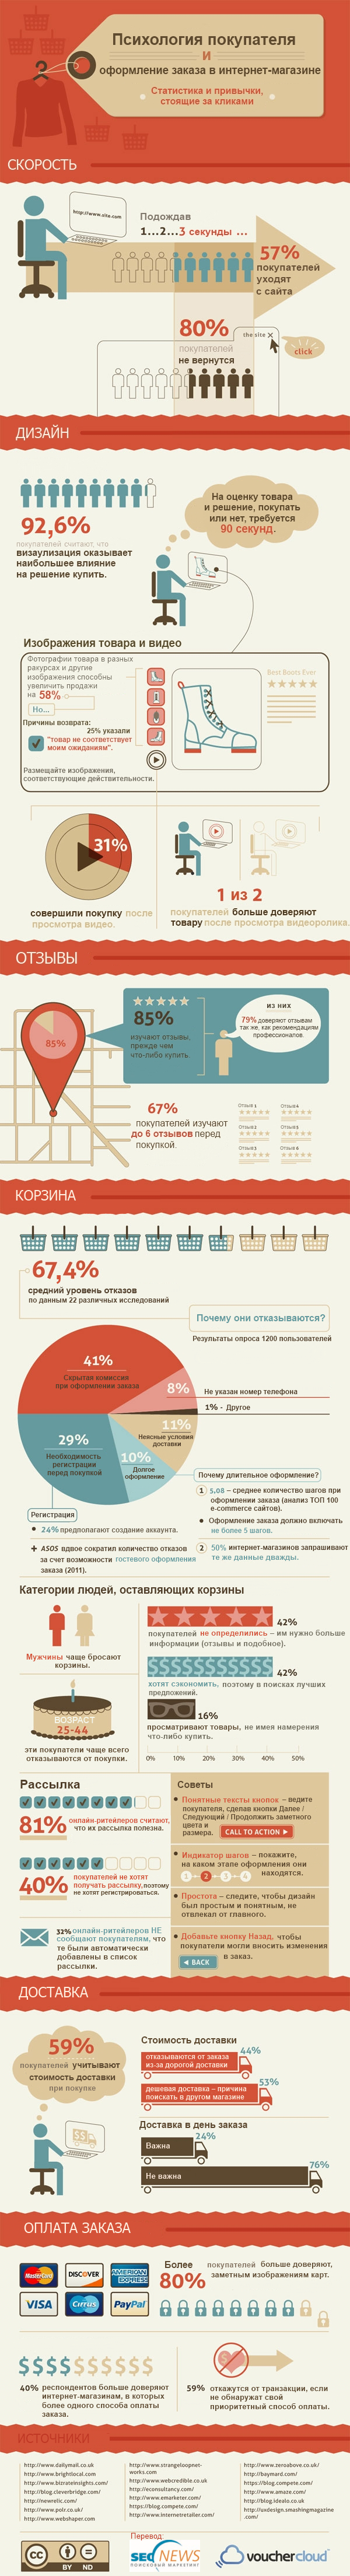 psychology-of-online-checkout-infographic_main